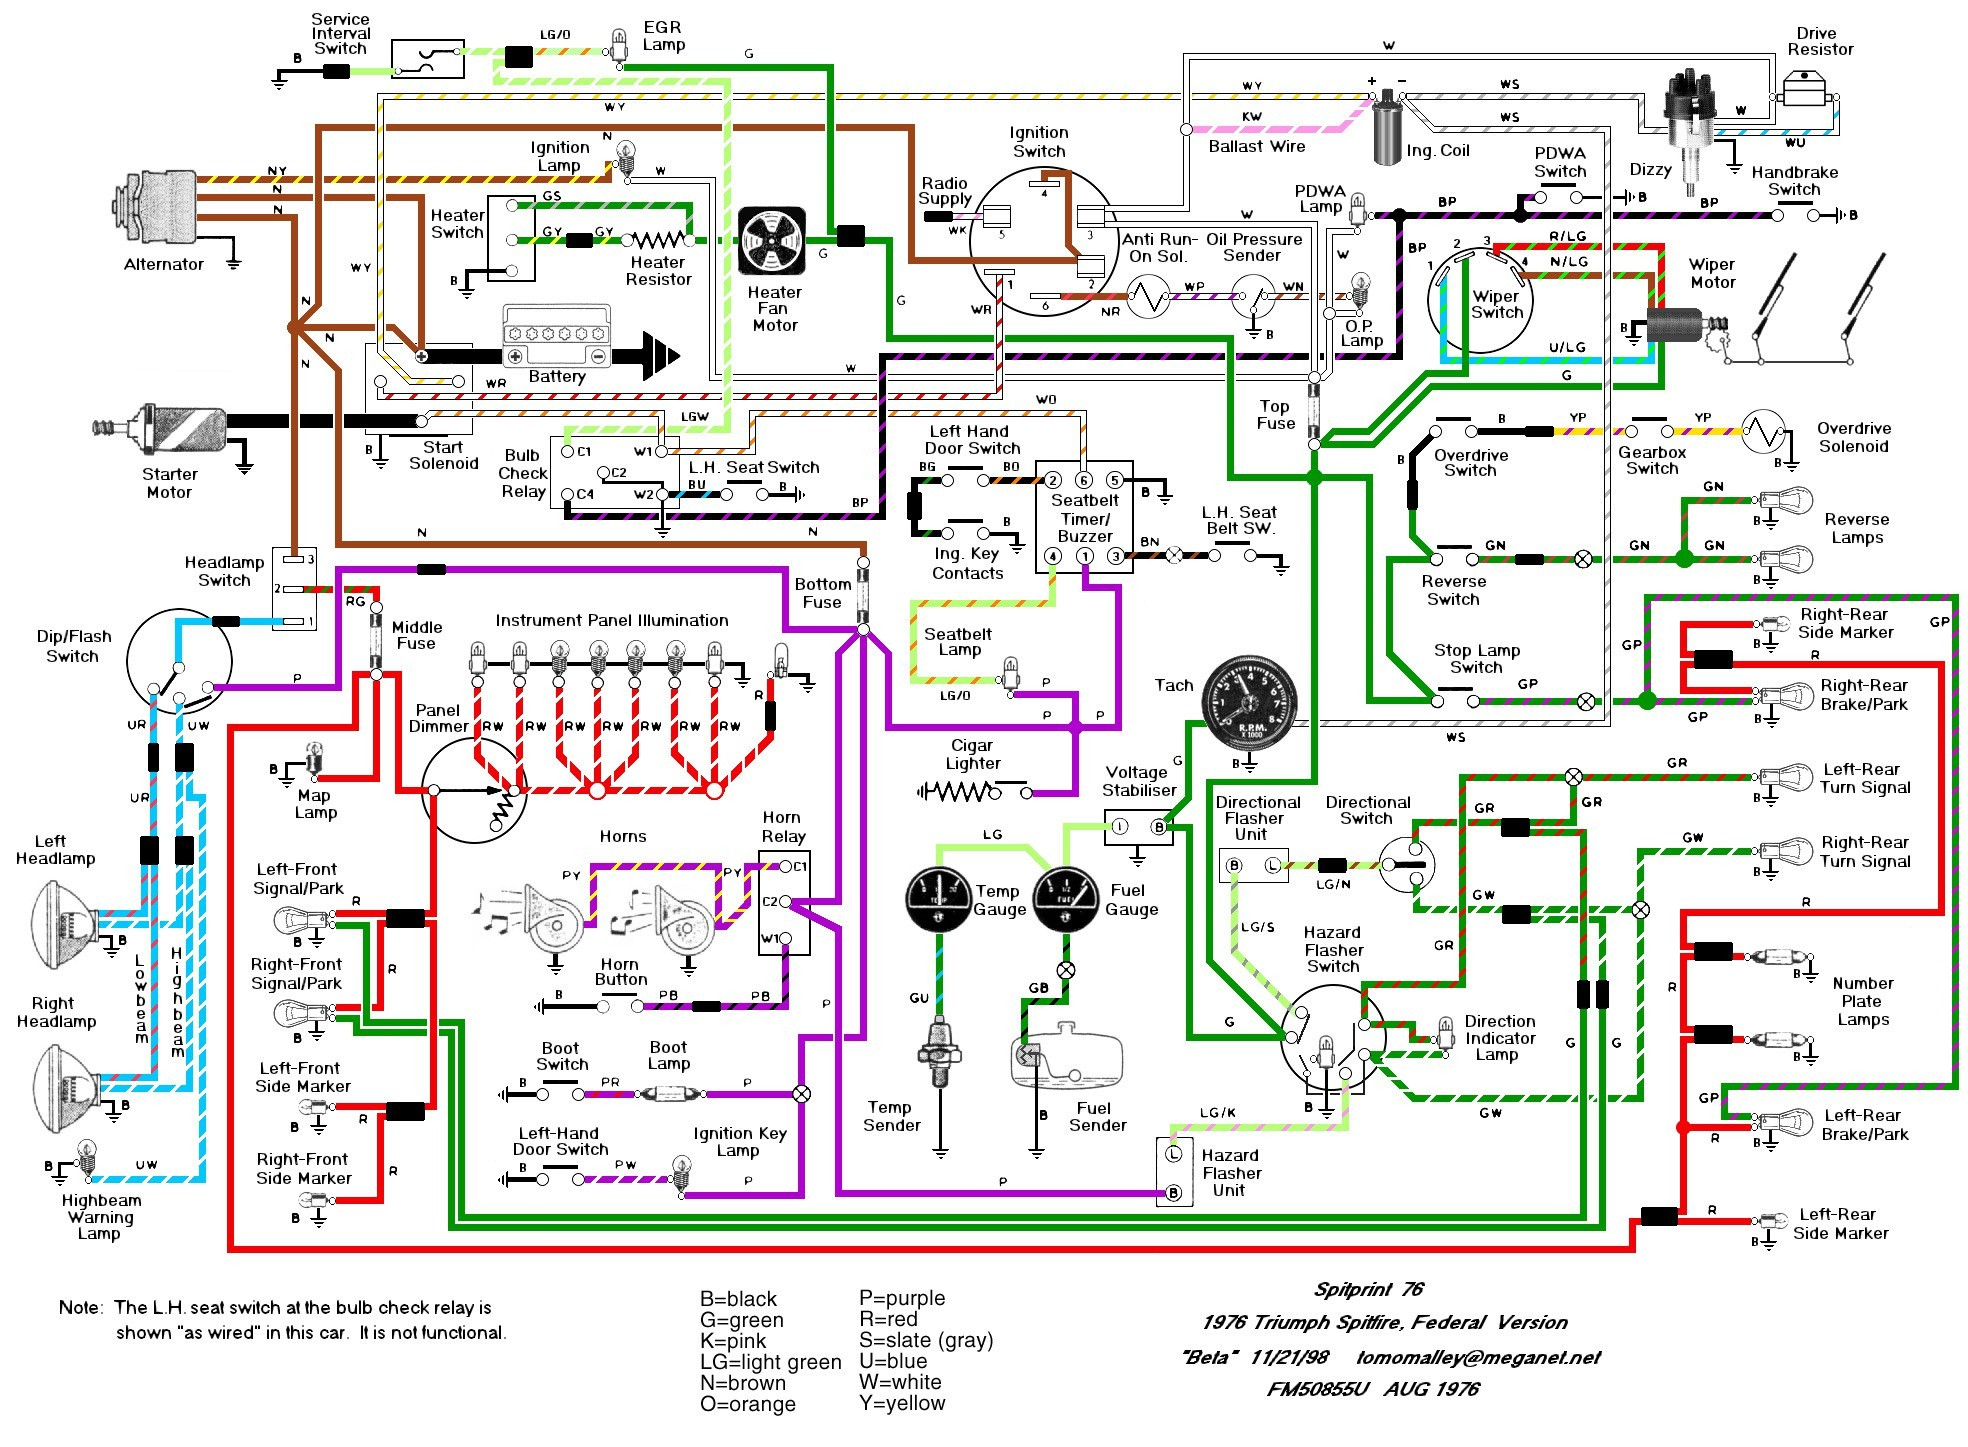 Gem Car Fuse Box - Wiring Diagrams Name learned-function -  learned-function.illabirintodellacreativita.it | Battery S Gem Wiring Diagrams |  | learned-function.illabirintodellacreativita.it